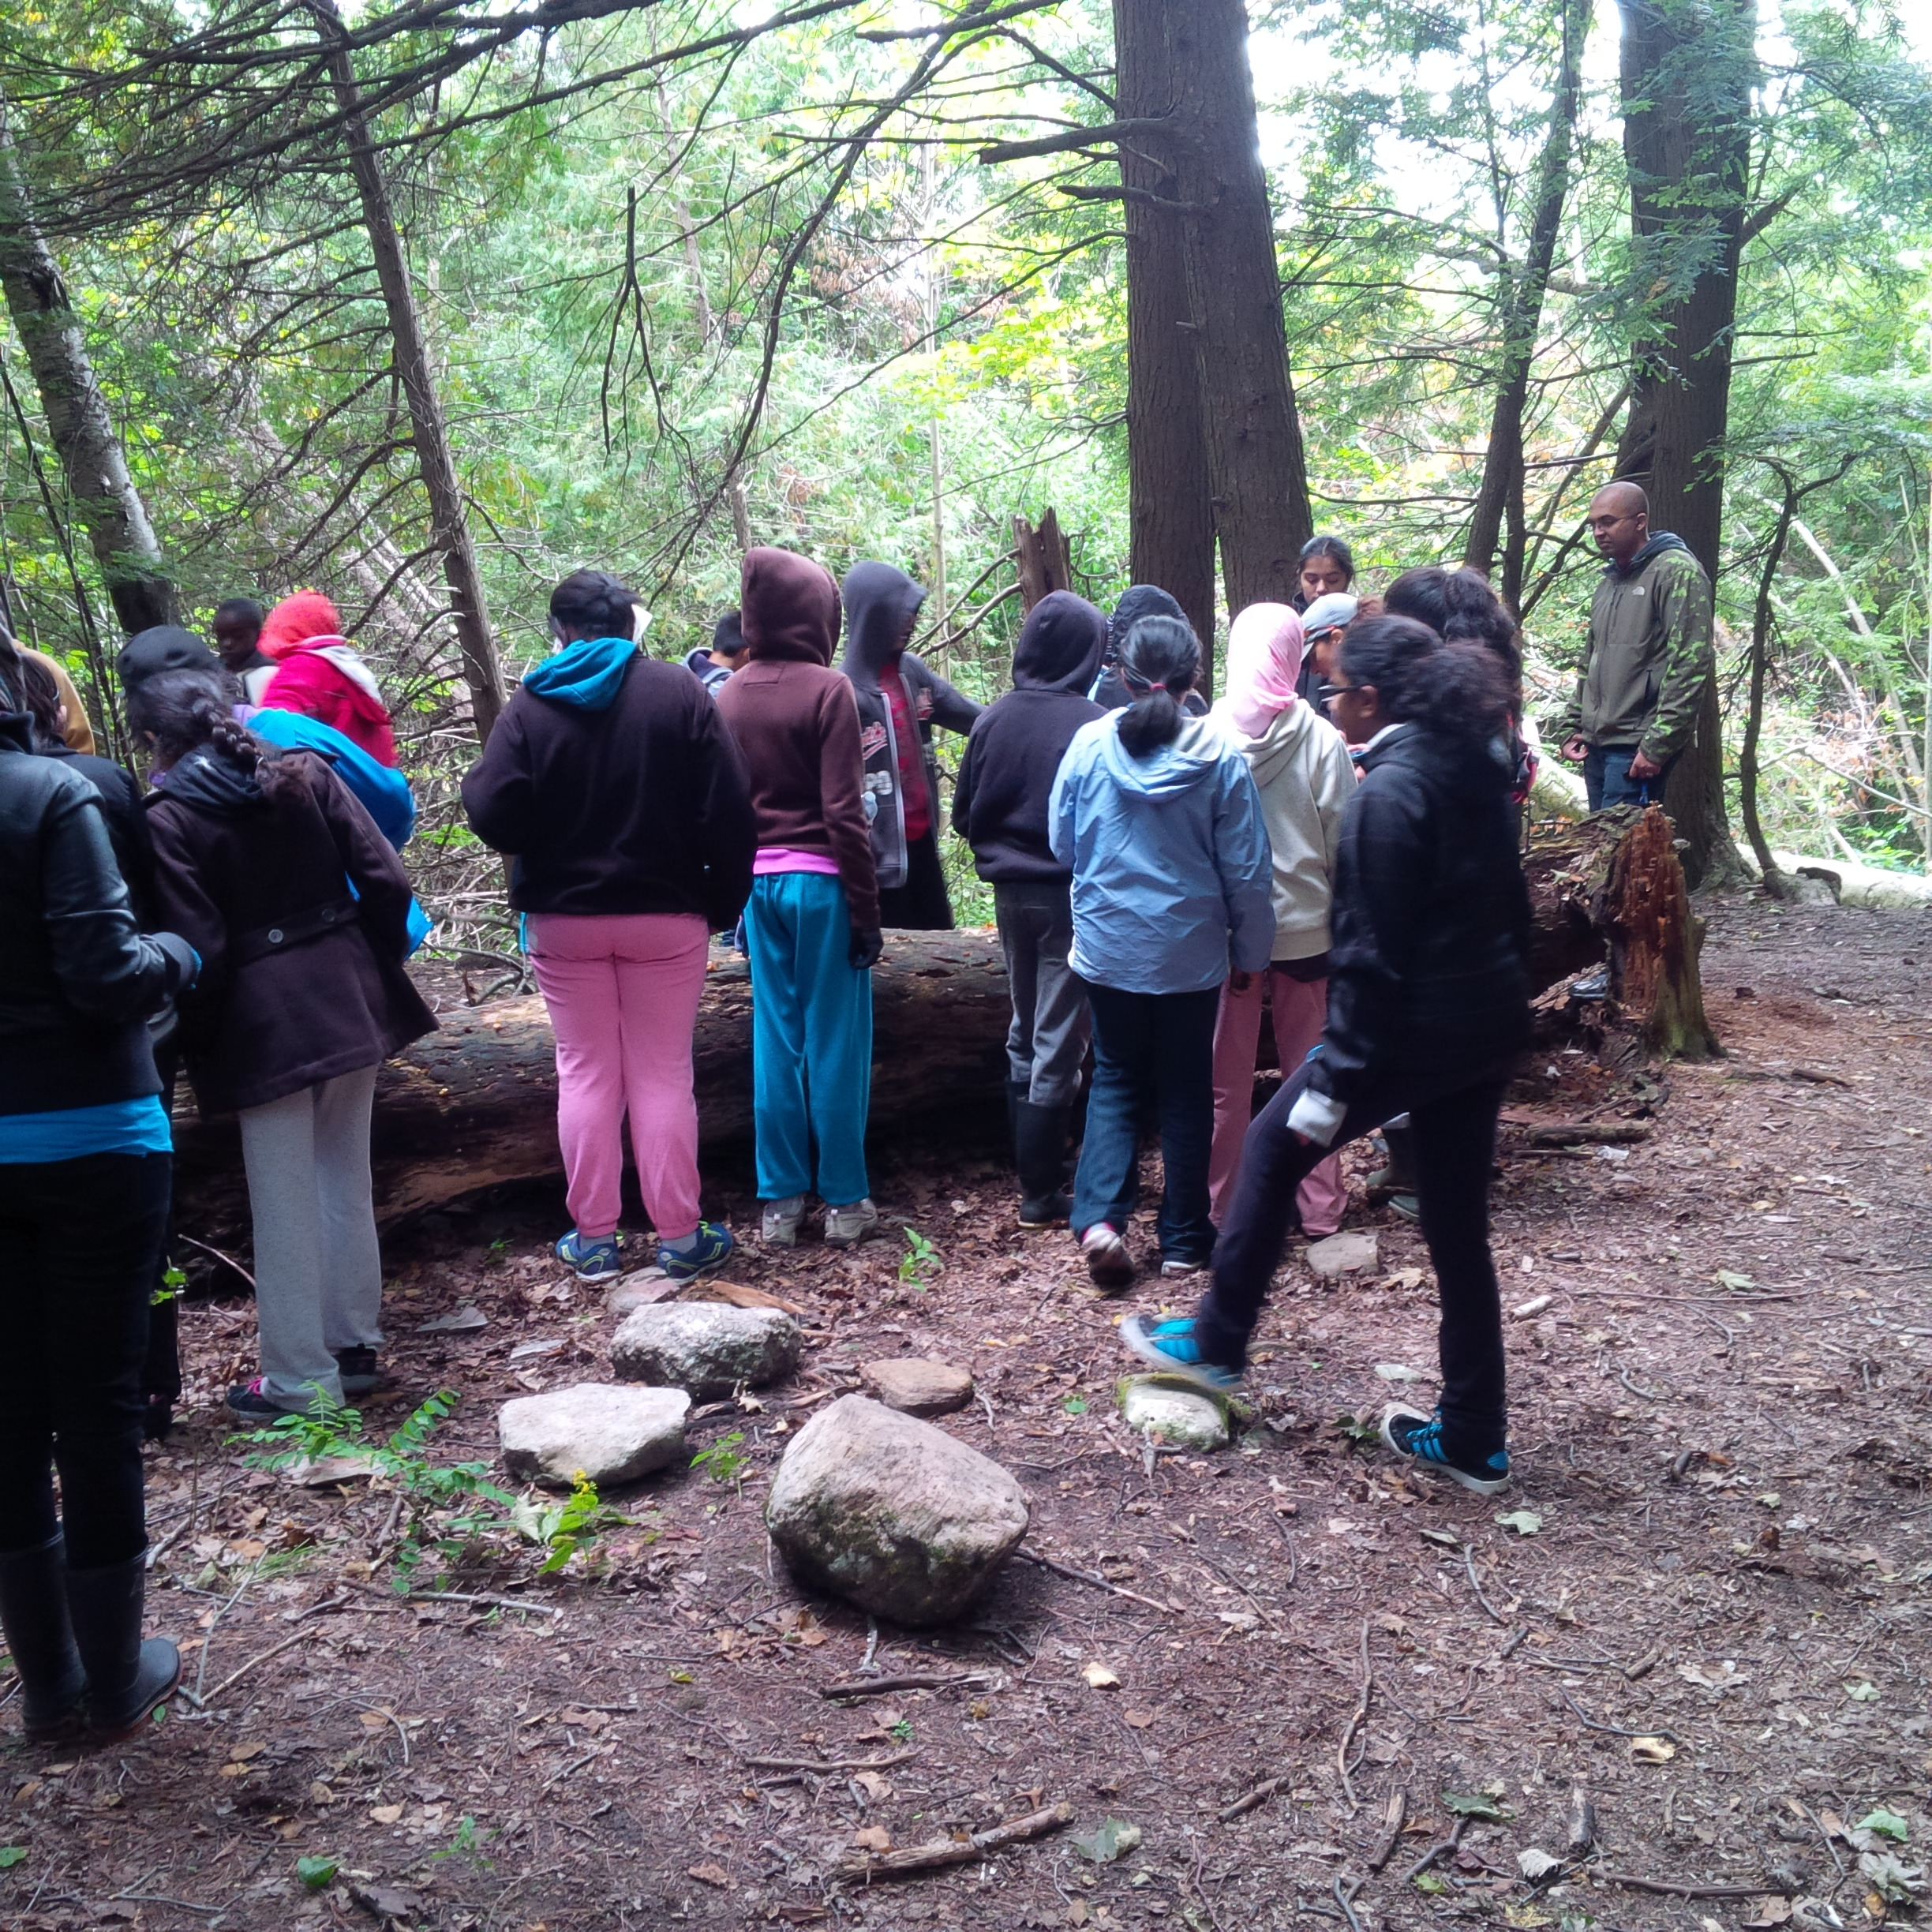 Students standing in forest